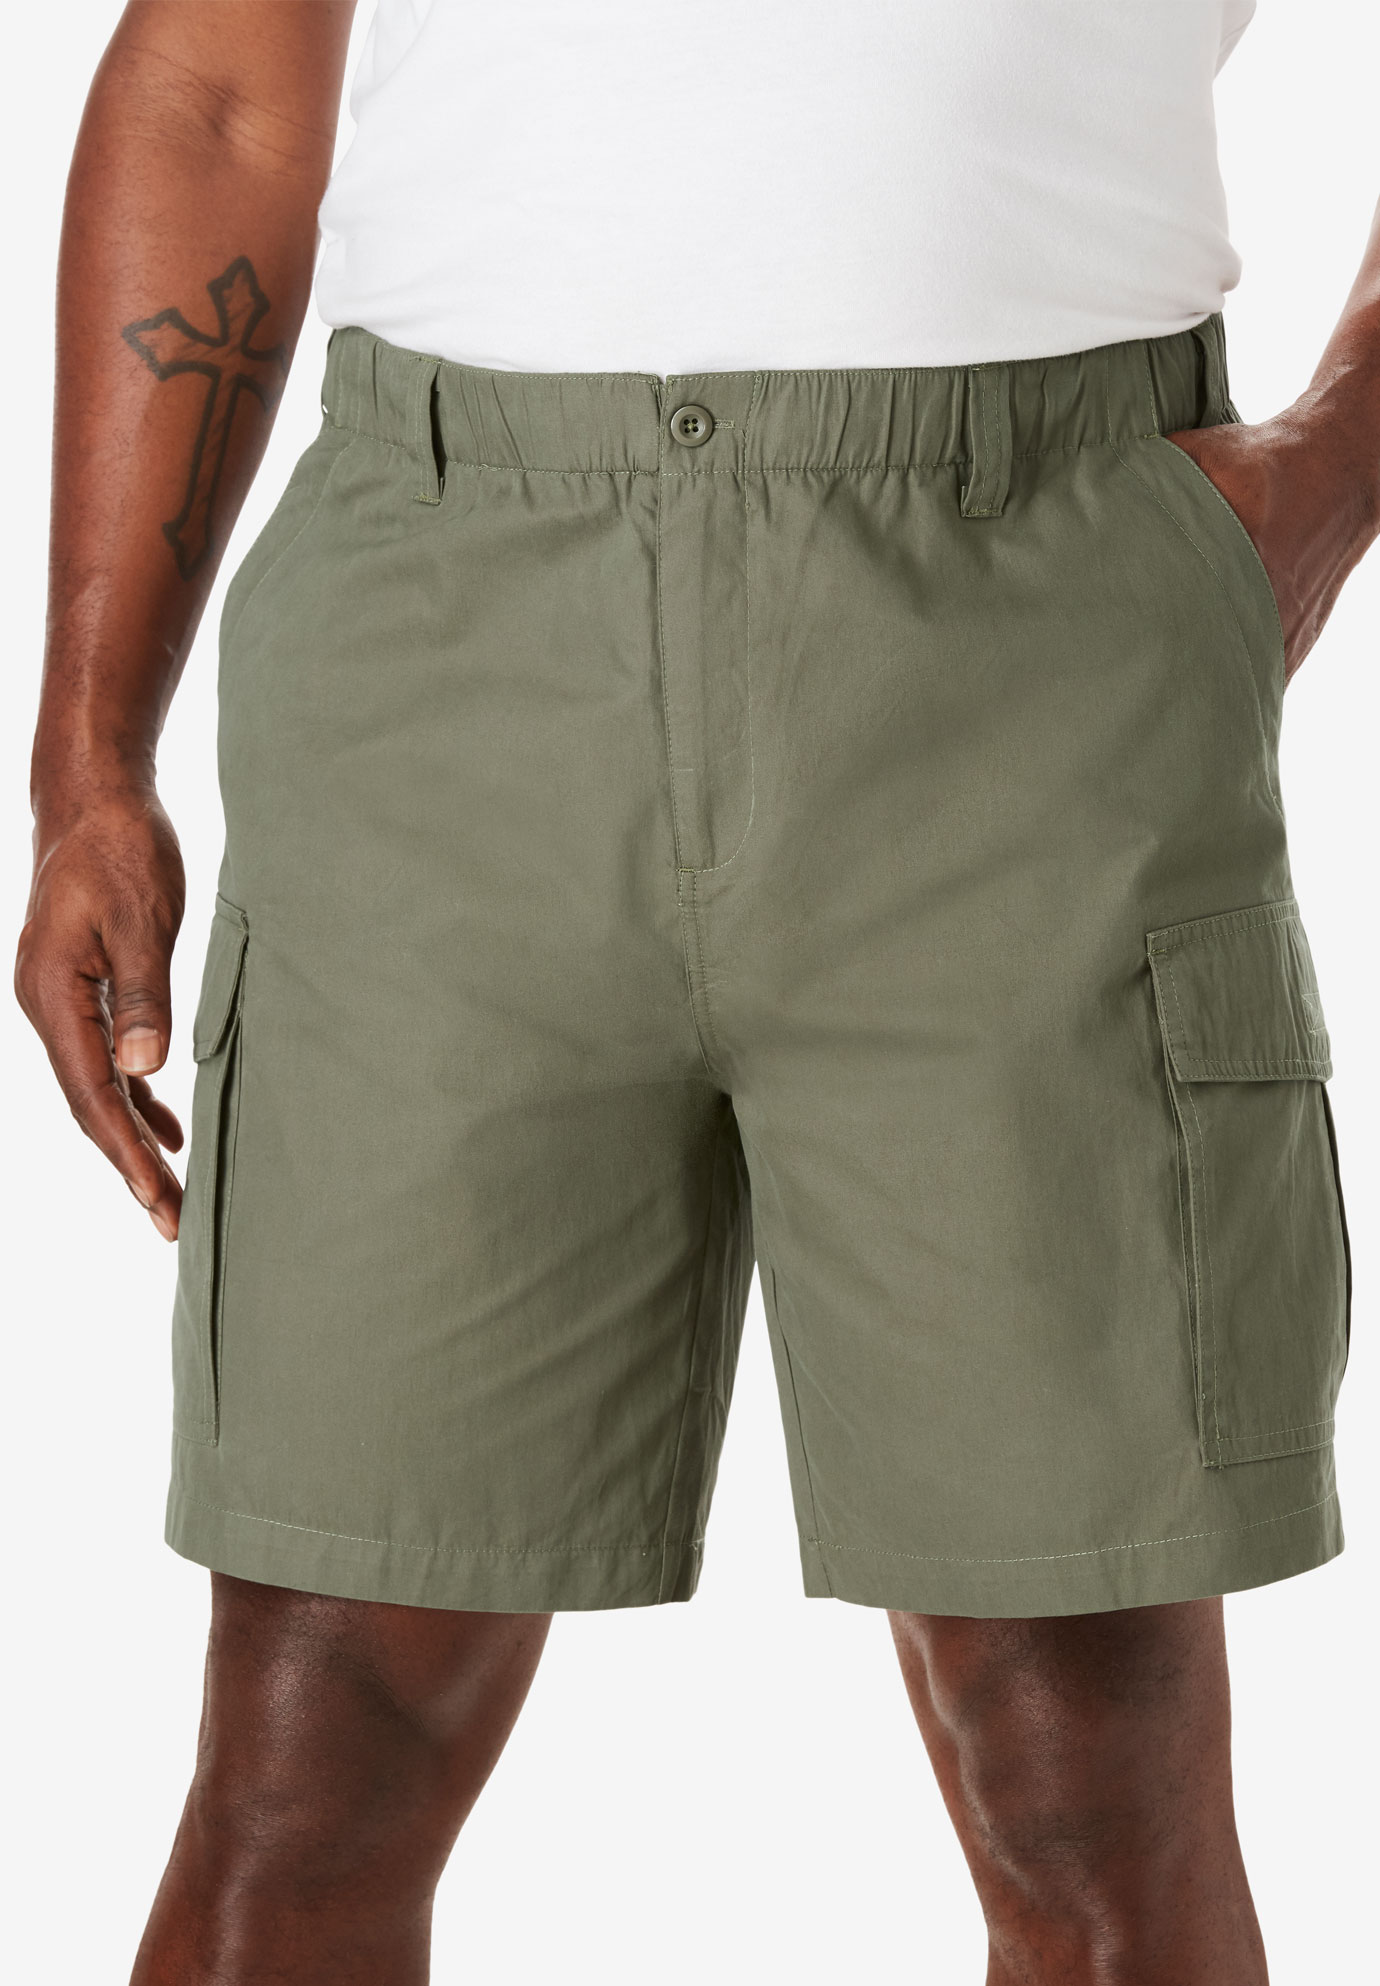 4409c9a2e1 Moisture Wicking Cargo Shorts| Big and Tall All Shorts | King Size